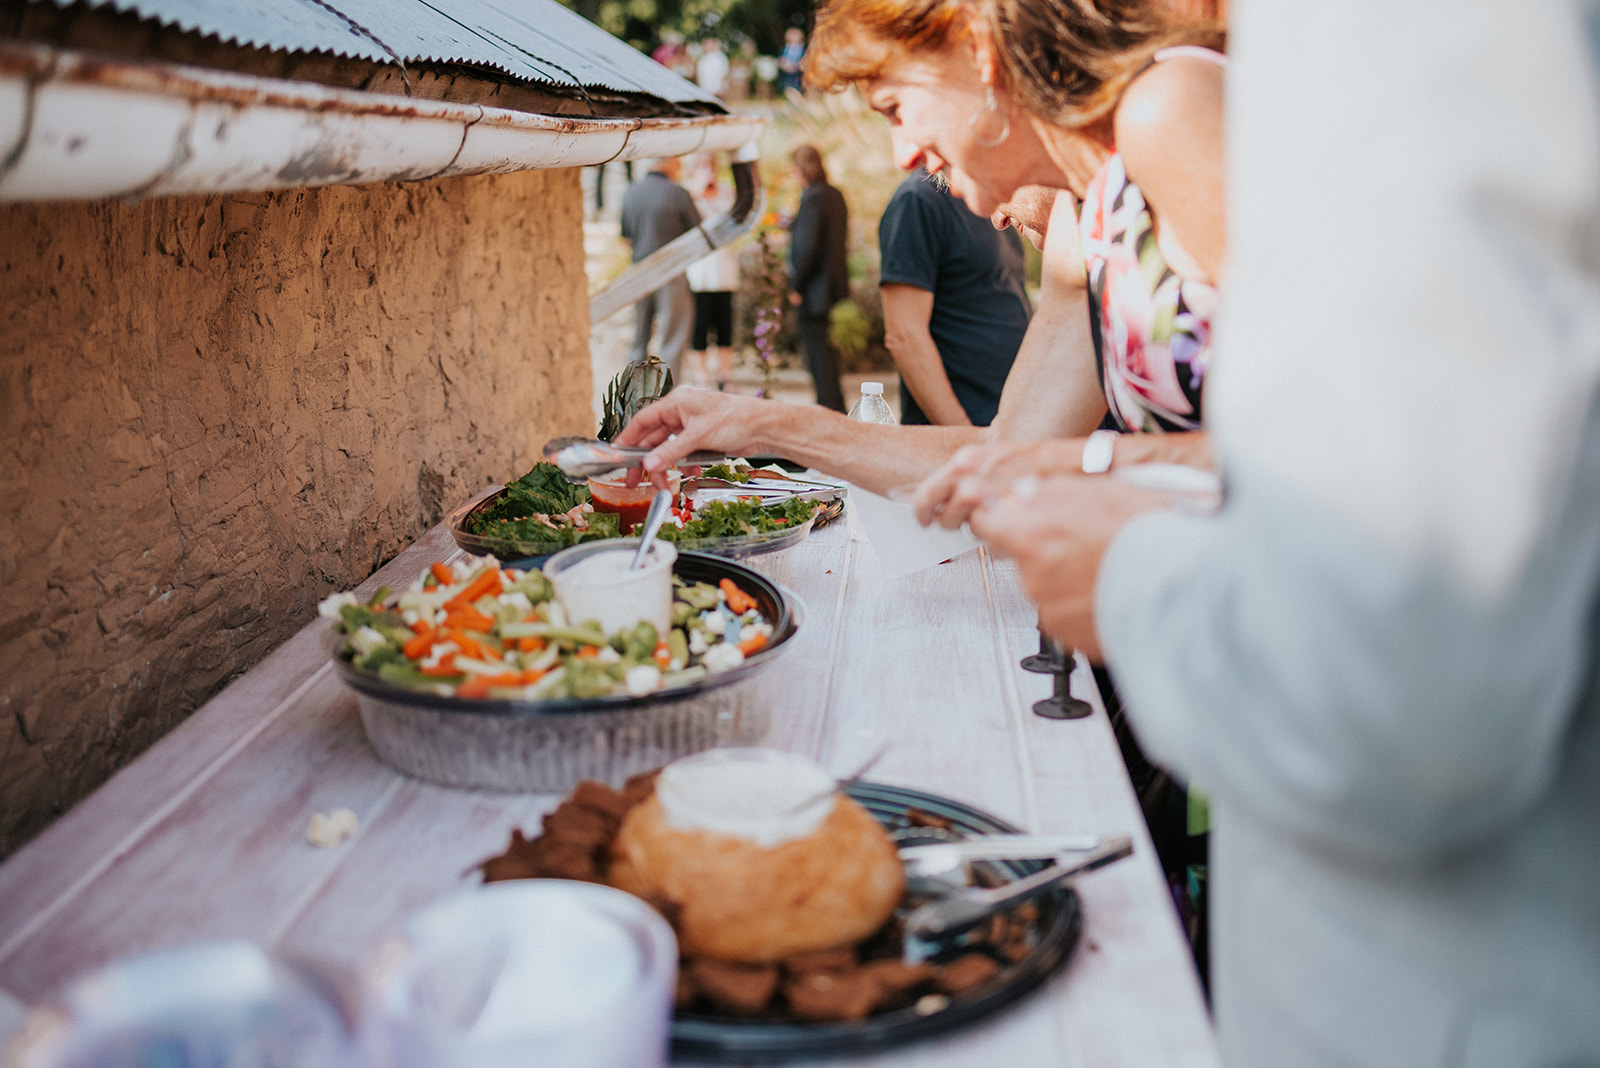 overthevineswisconsinwedding_0773.jpg